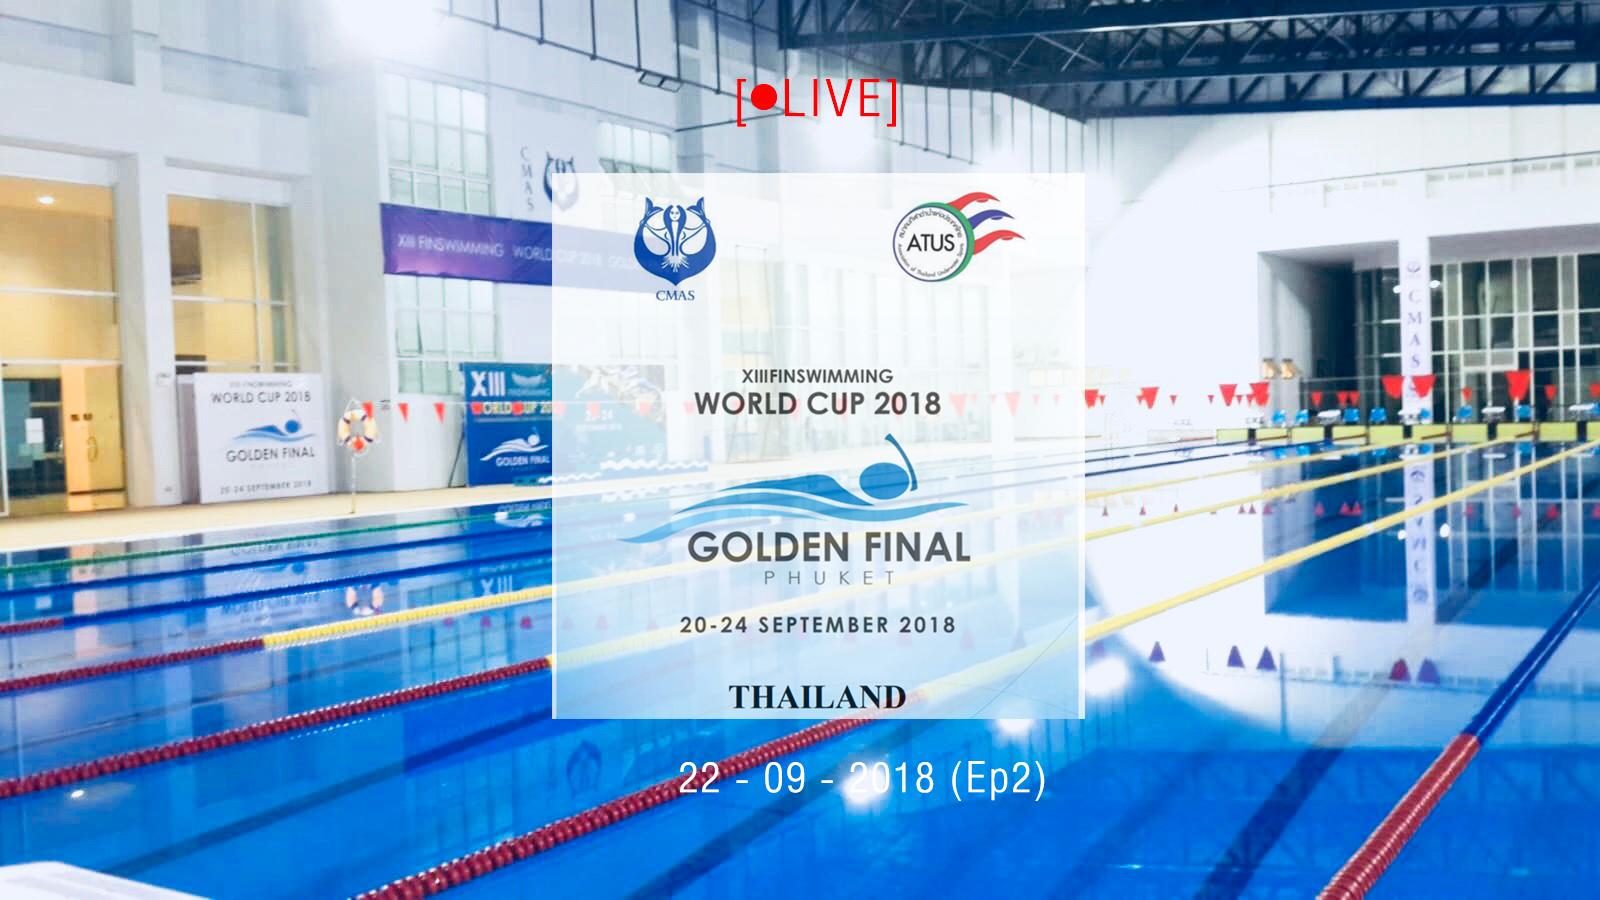 XIII FINSWIMMING WORLDCUP 2018 LIVE part2 day 1